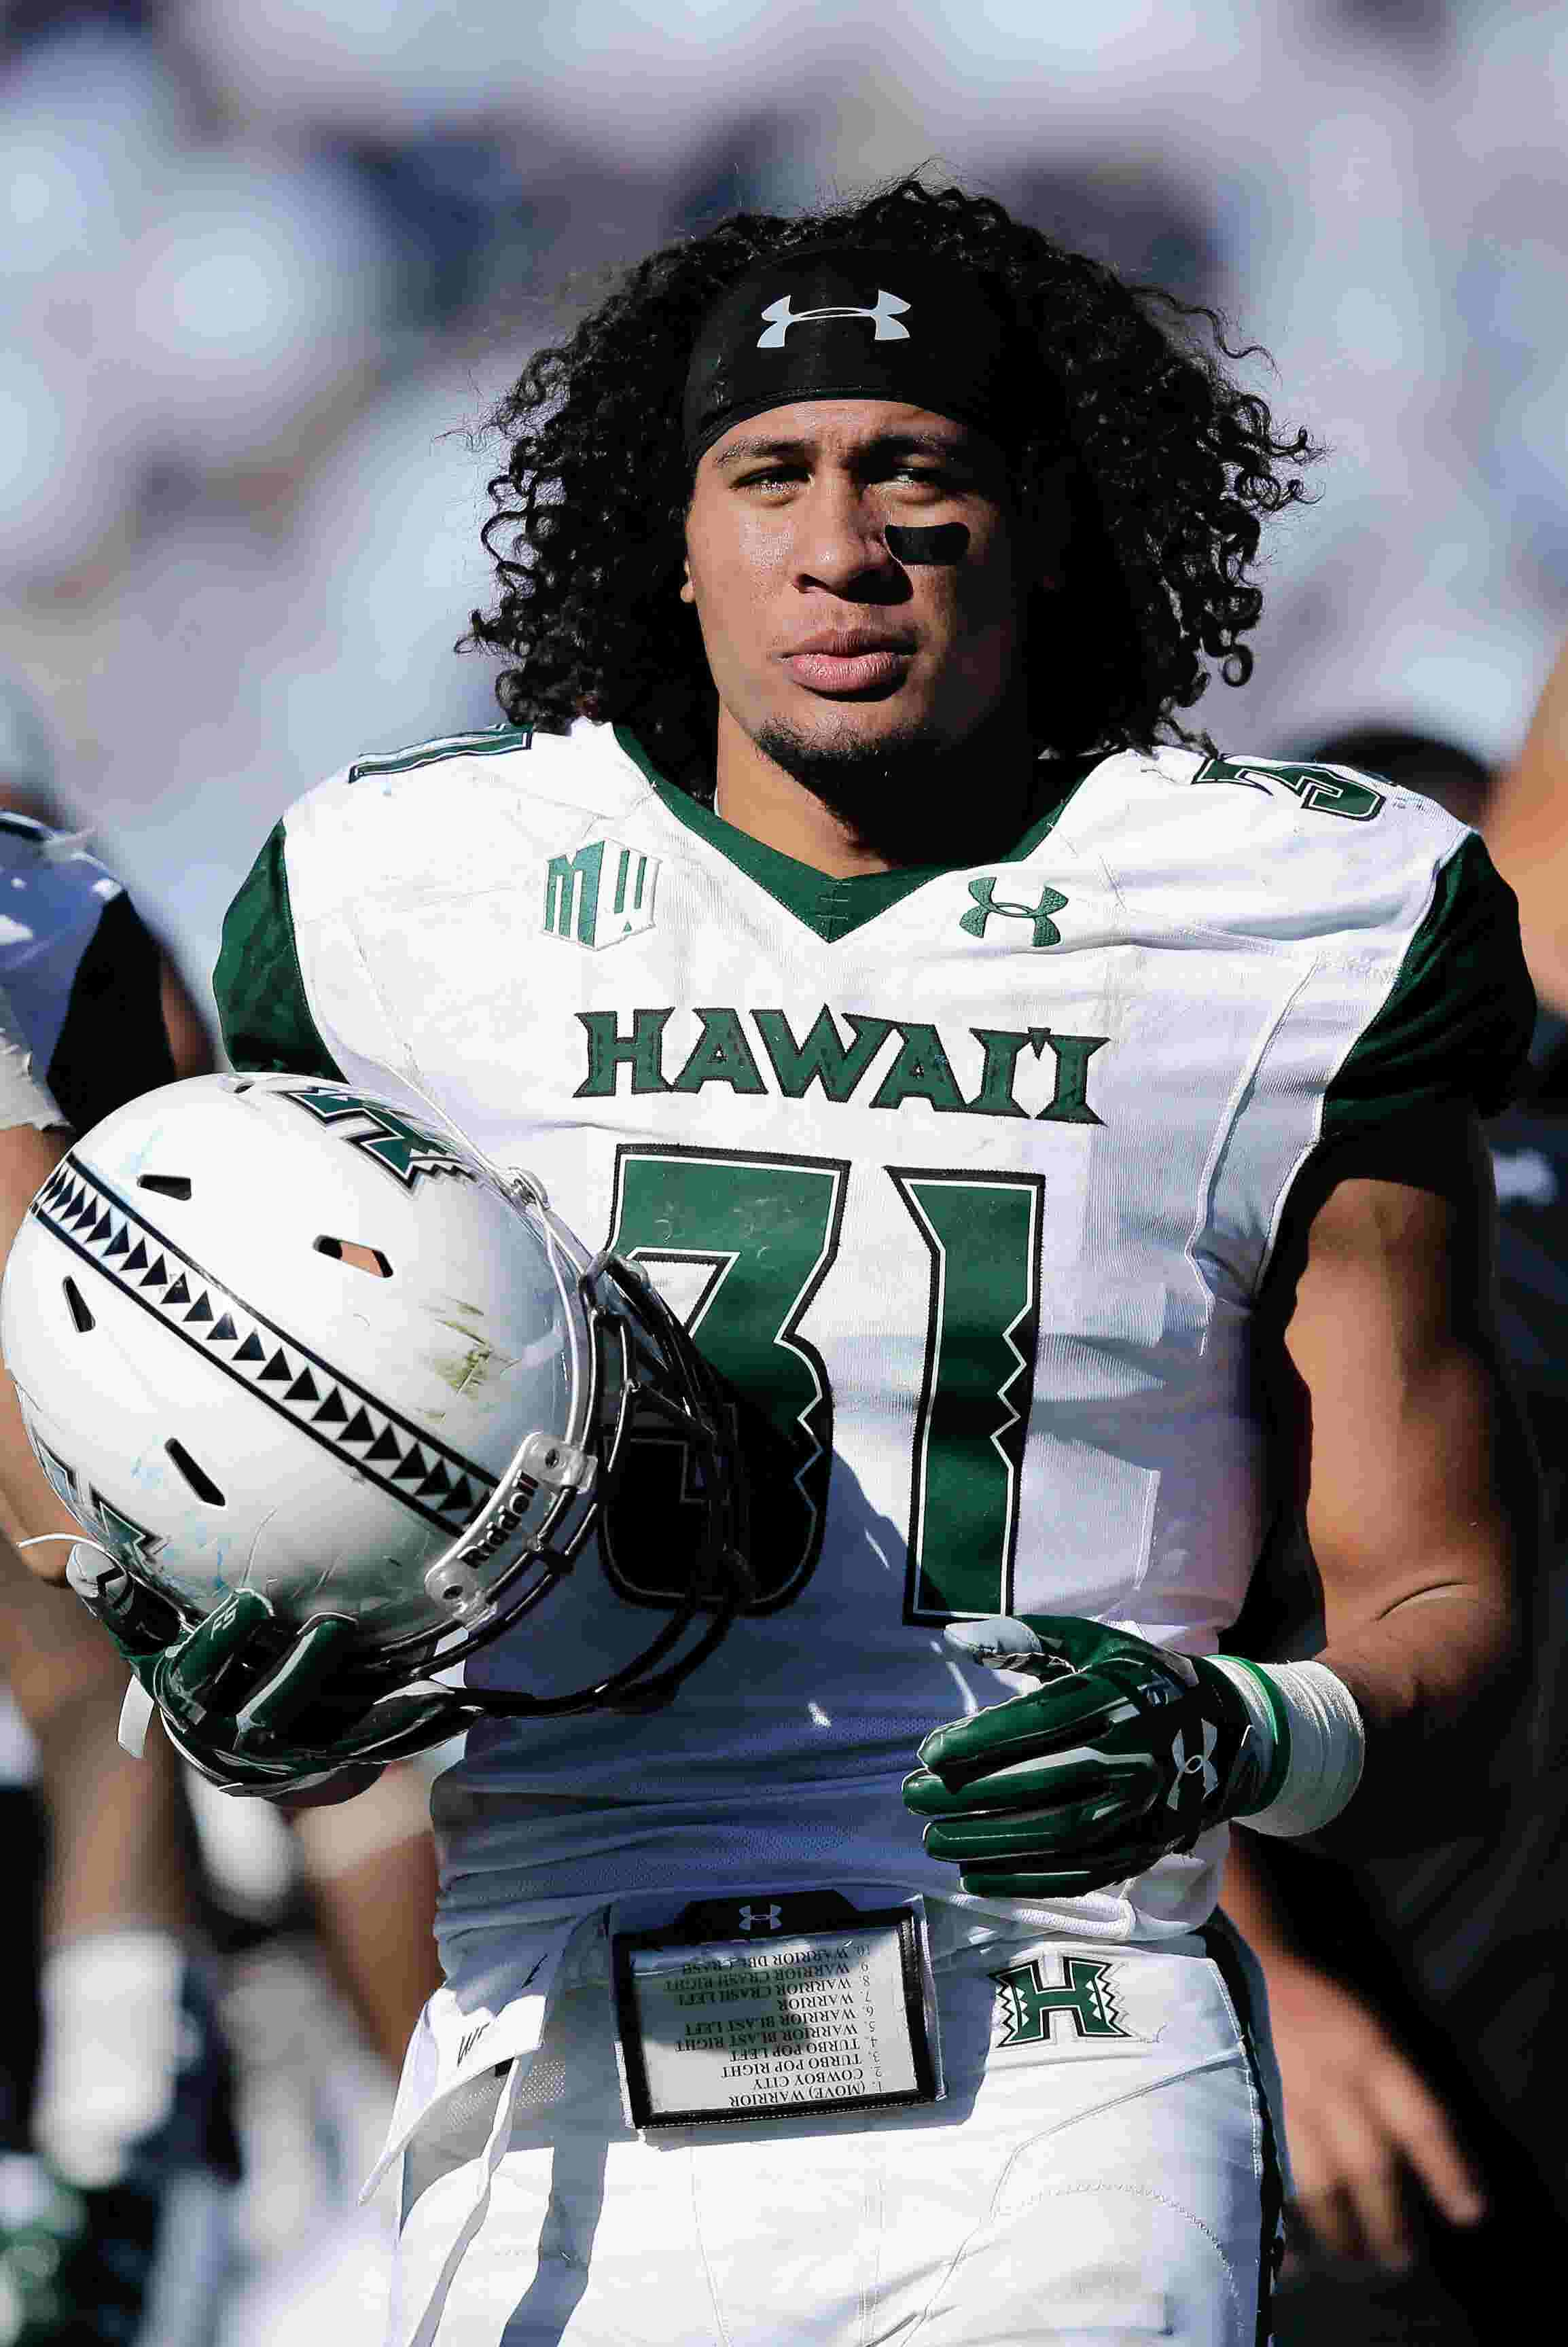 finest selection 7d18c d0340 Meet the Detroit Lions' 2019 second-round pick: Hawaii LB Jahvani Tavai